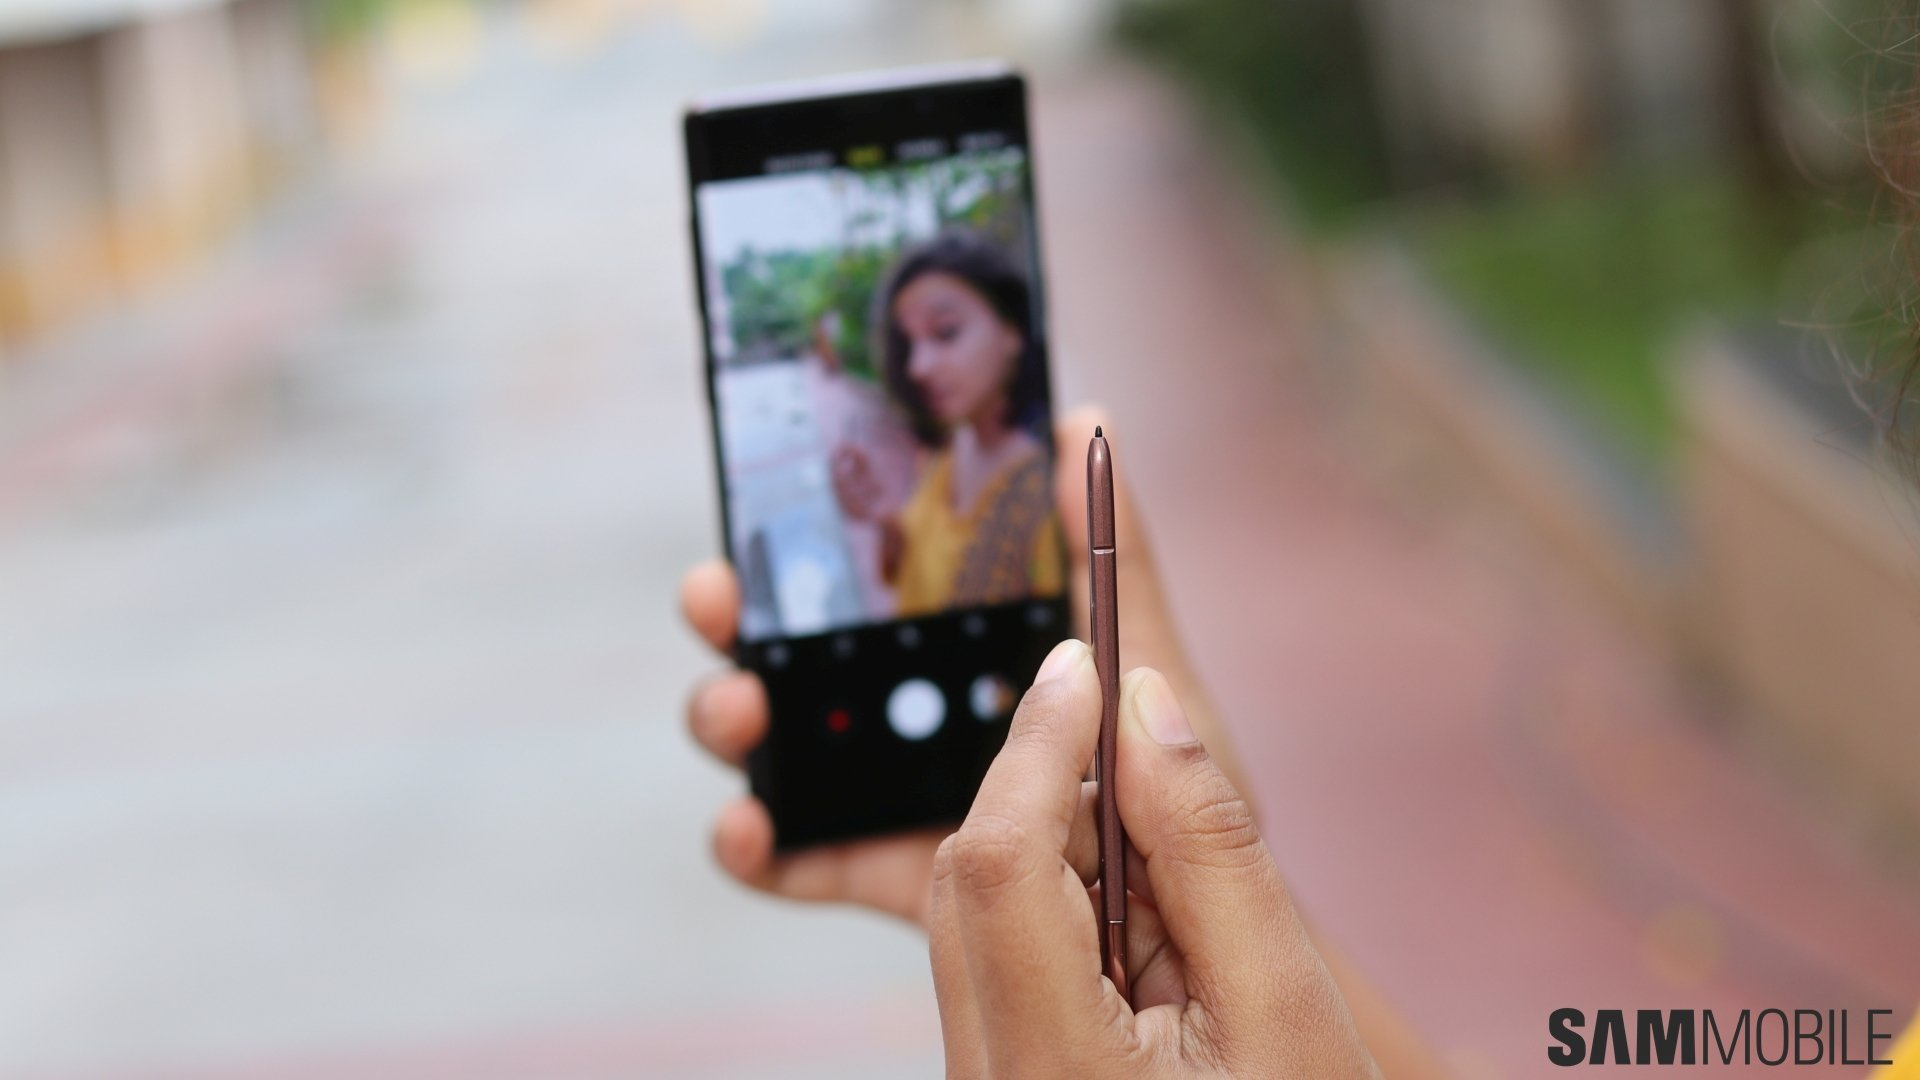 All the ways you can take pictures on the Samsung Galaxy